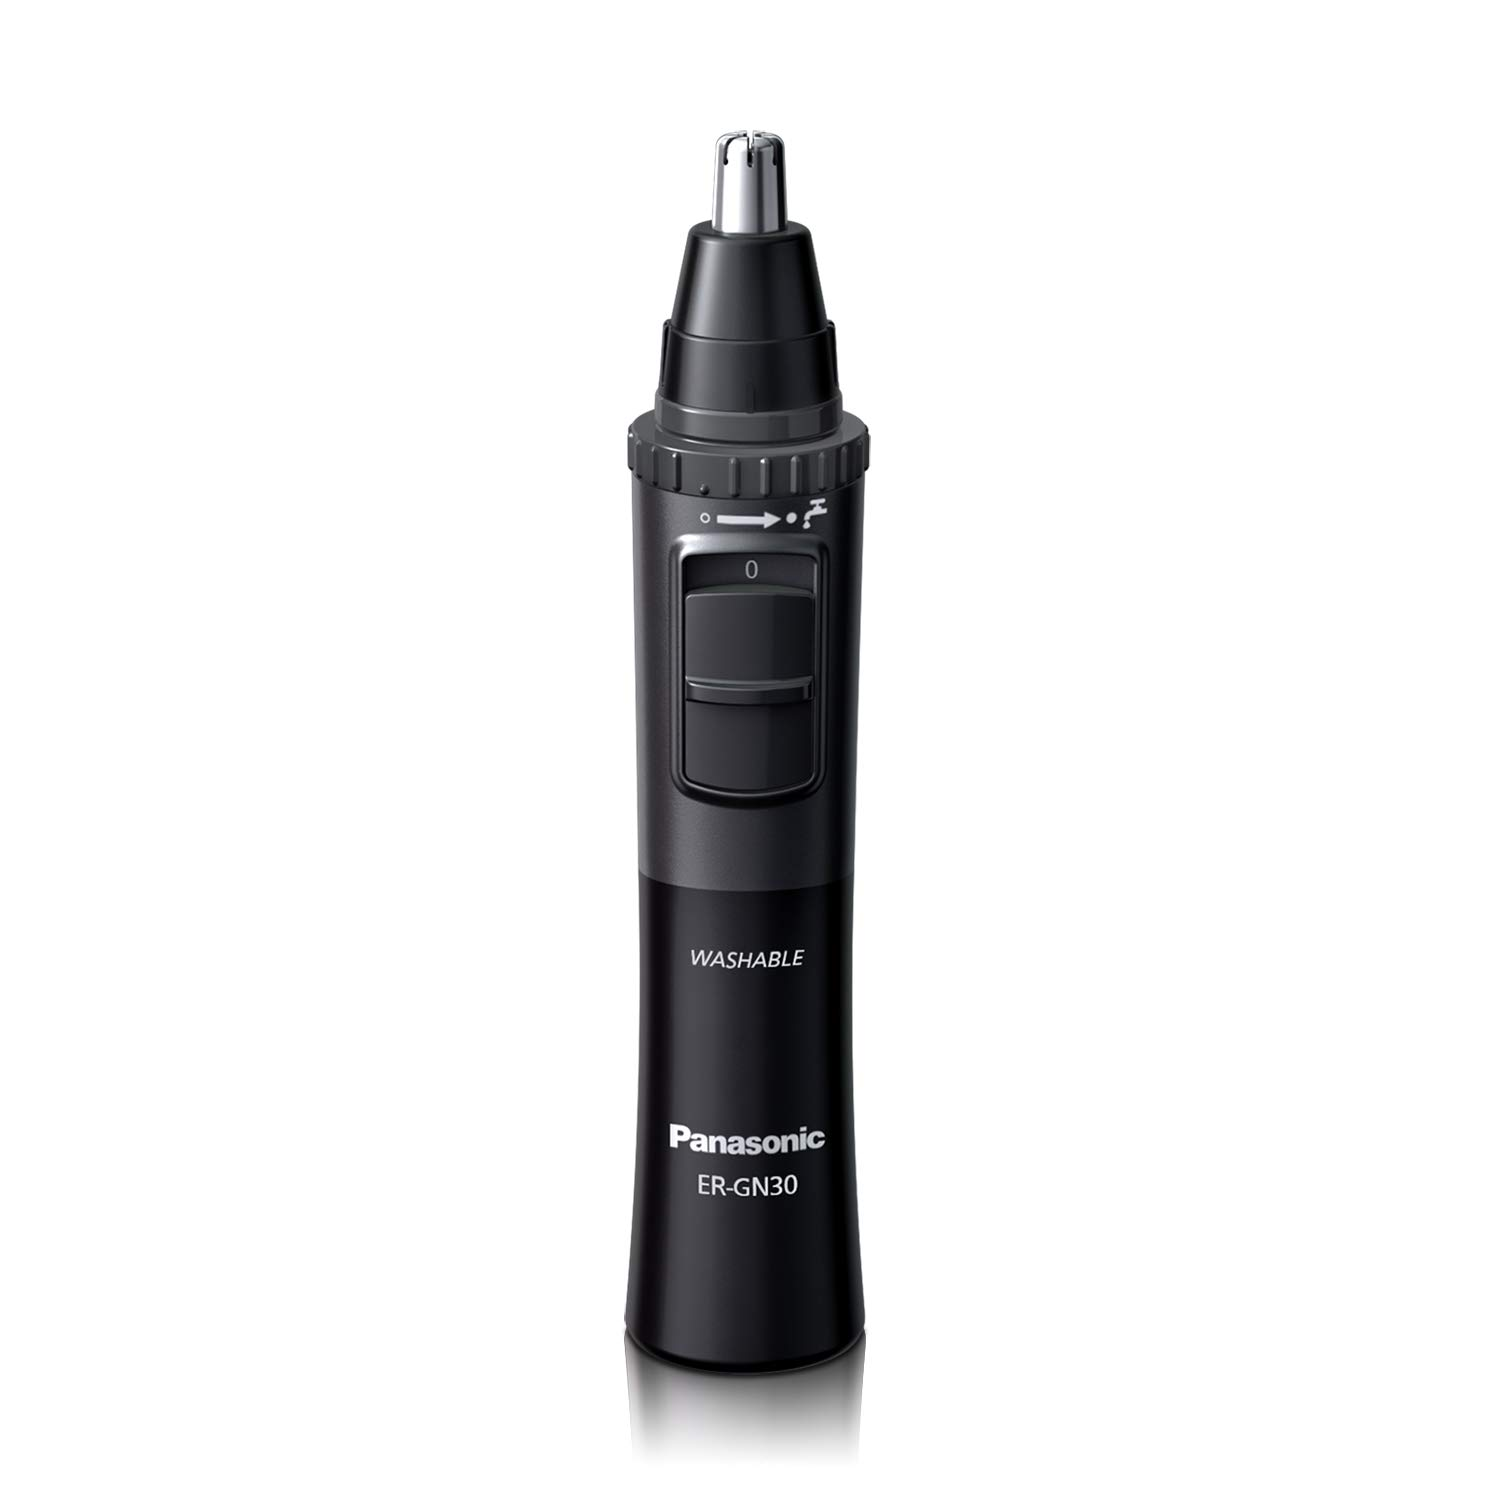 Panasonic Men's Ear and Nose Trimmer Award-winning store Popular product Hair Dry Wet Hypoalle